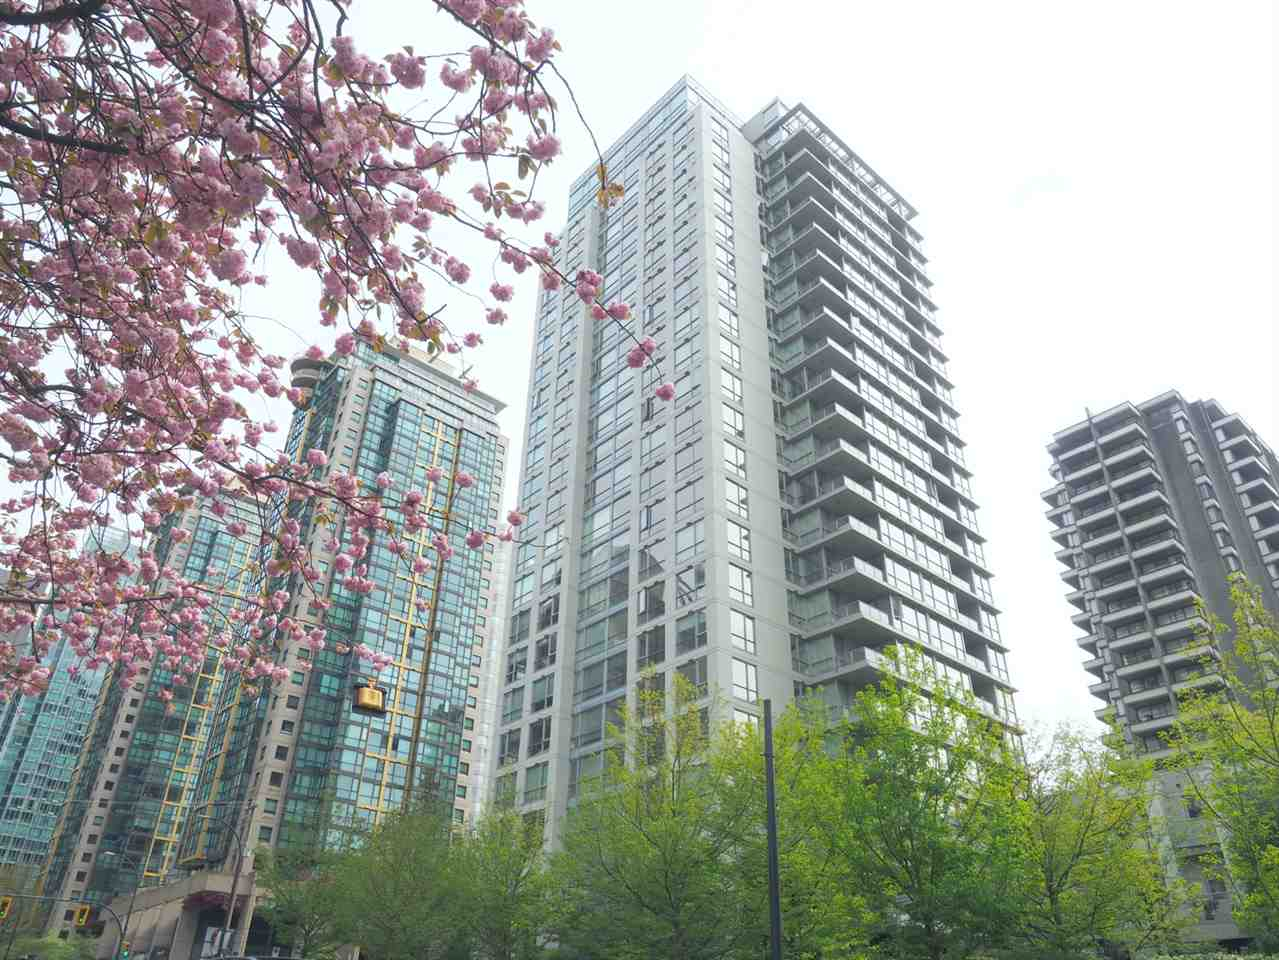 Main Photo: 1004 1420 W GEORGIA STREET in Vancouver: West End VW Condo for sale (Vancouver West)  : MLS® # R2162341